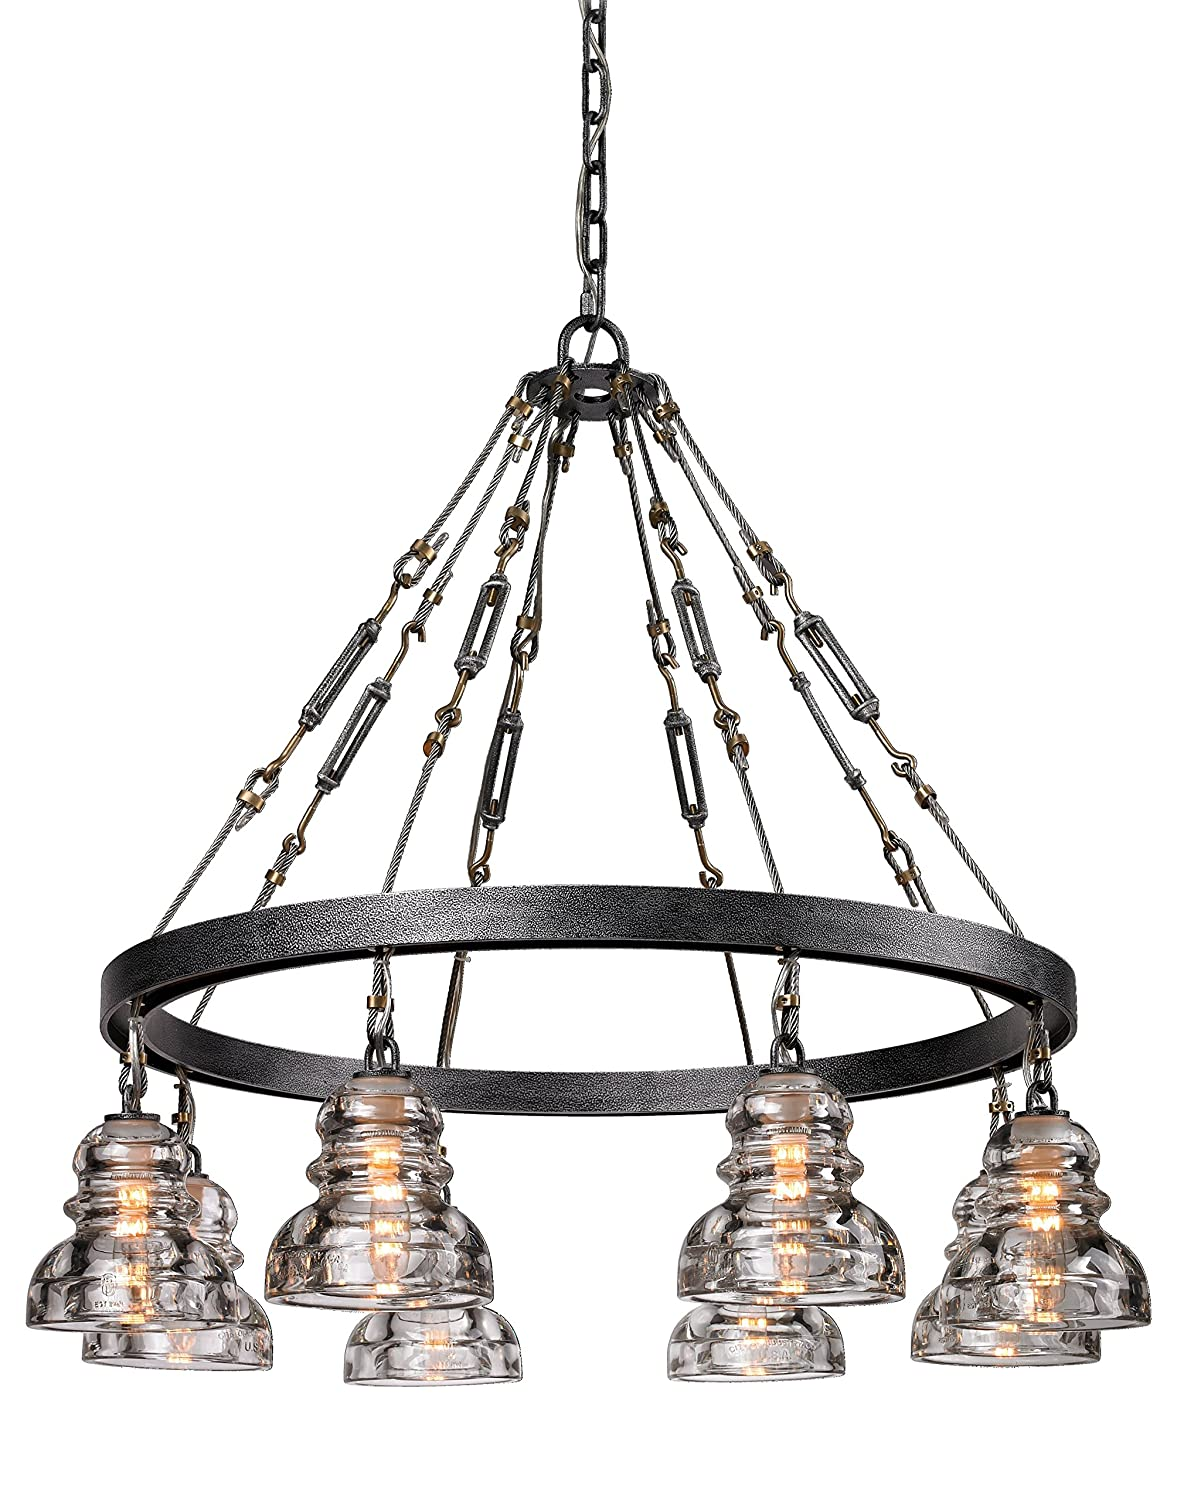 Amazon troy lighting menlo park 255w 5 light pendant old amazon troy lighting menlo park 255w 5 light pendant old silver finish with historic pressed clear glass home improvement amipublicfo Image collections